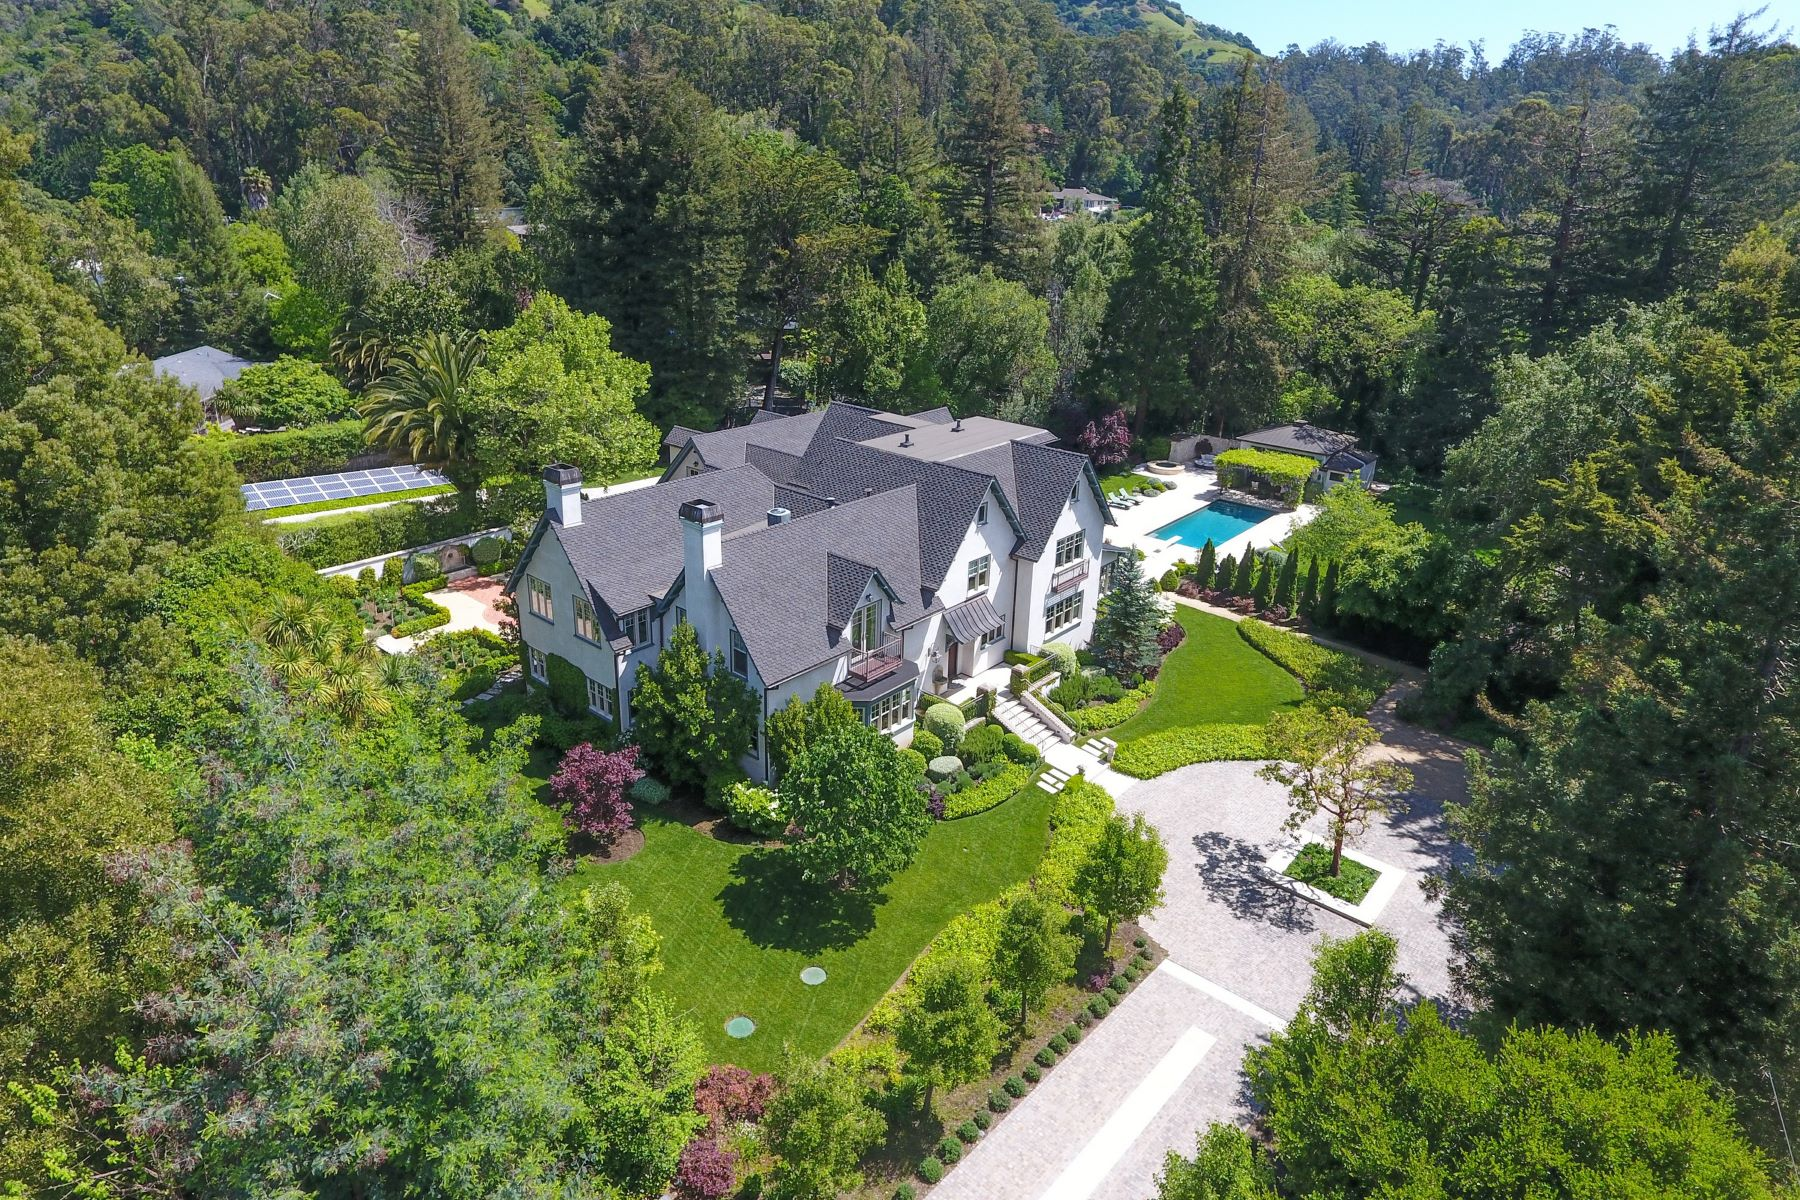 獨棟家庭住宅 為 出售 在 Historic Grandeur Meets Contemporary Elegance 120 Mountain View Ave San Rafael, 加利福尼亞州, 94901 美國